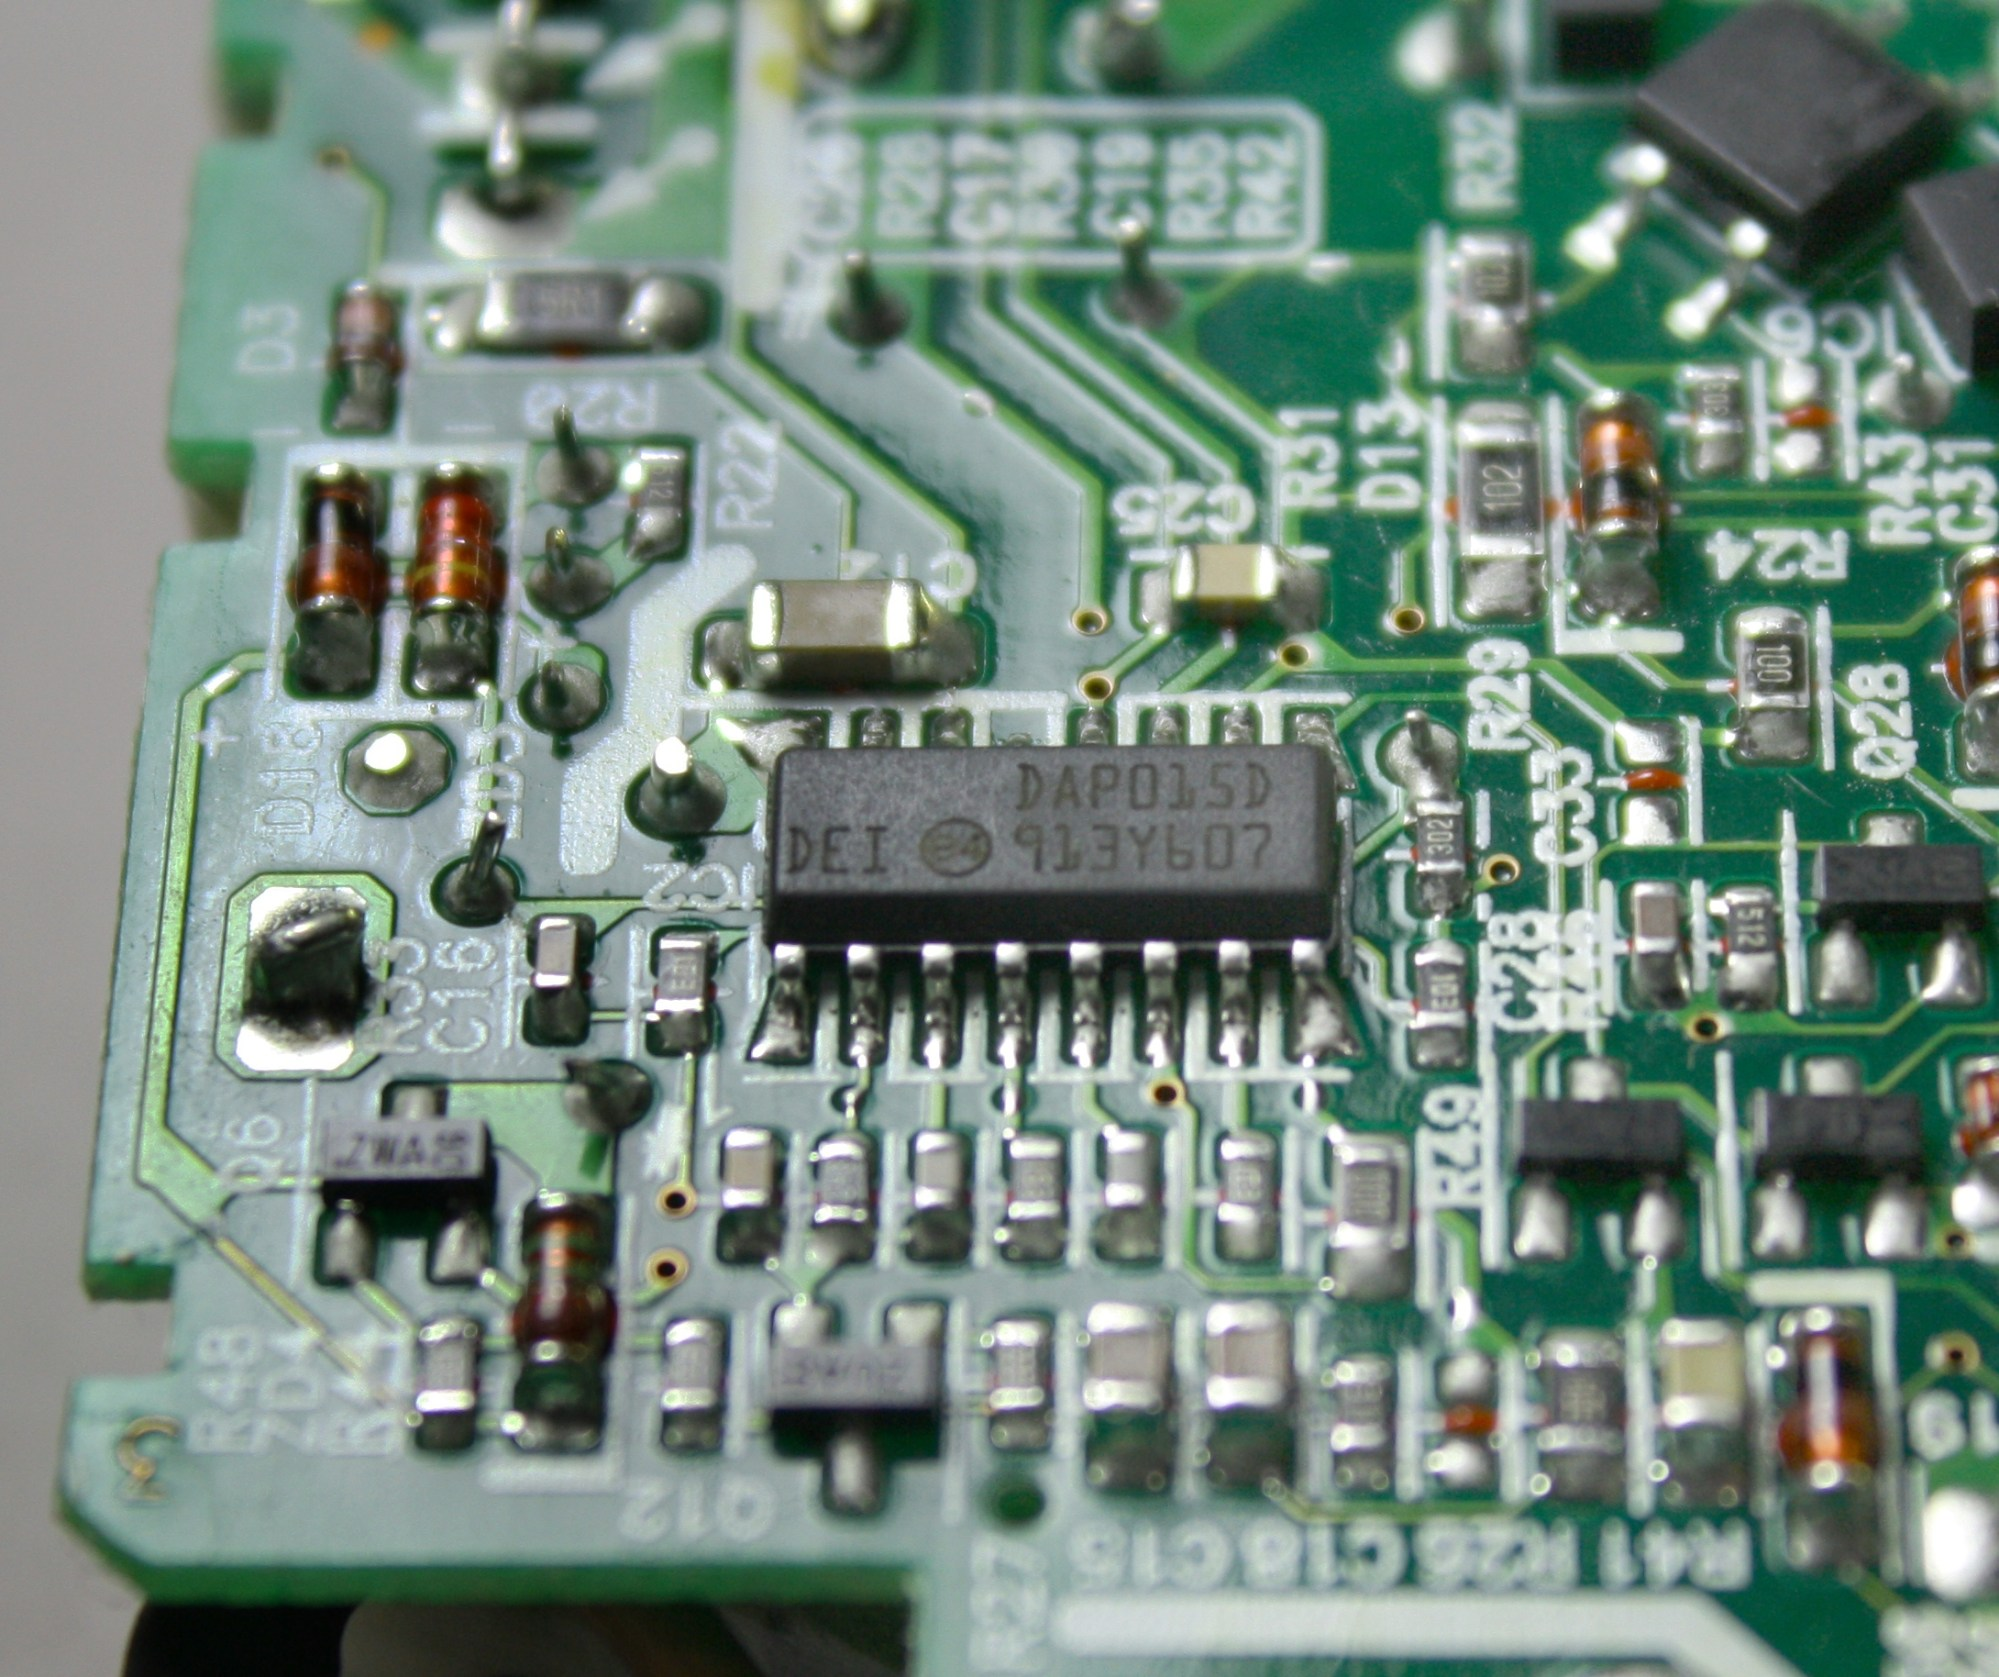 hight resolution of the circuit board inside the macbook charger the chip in the middle controls the switching